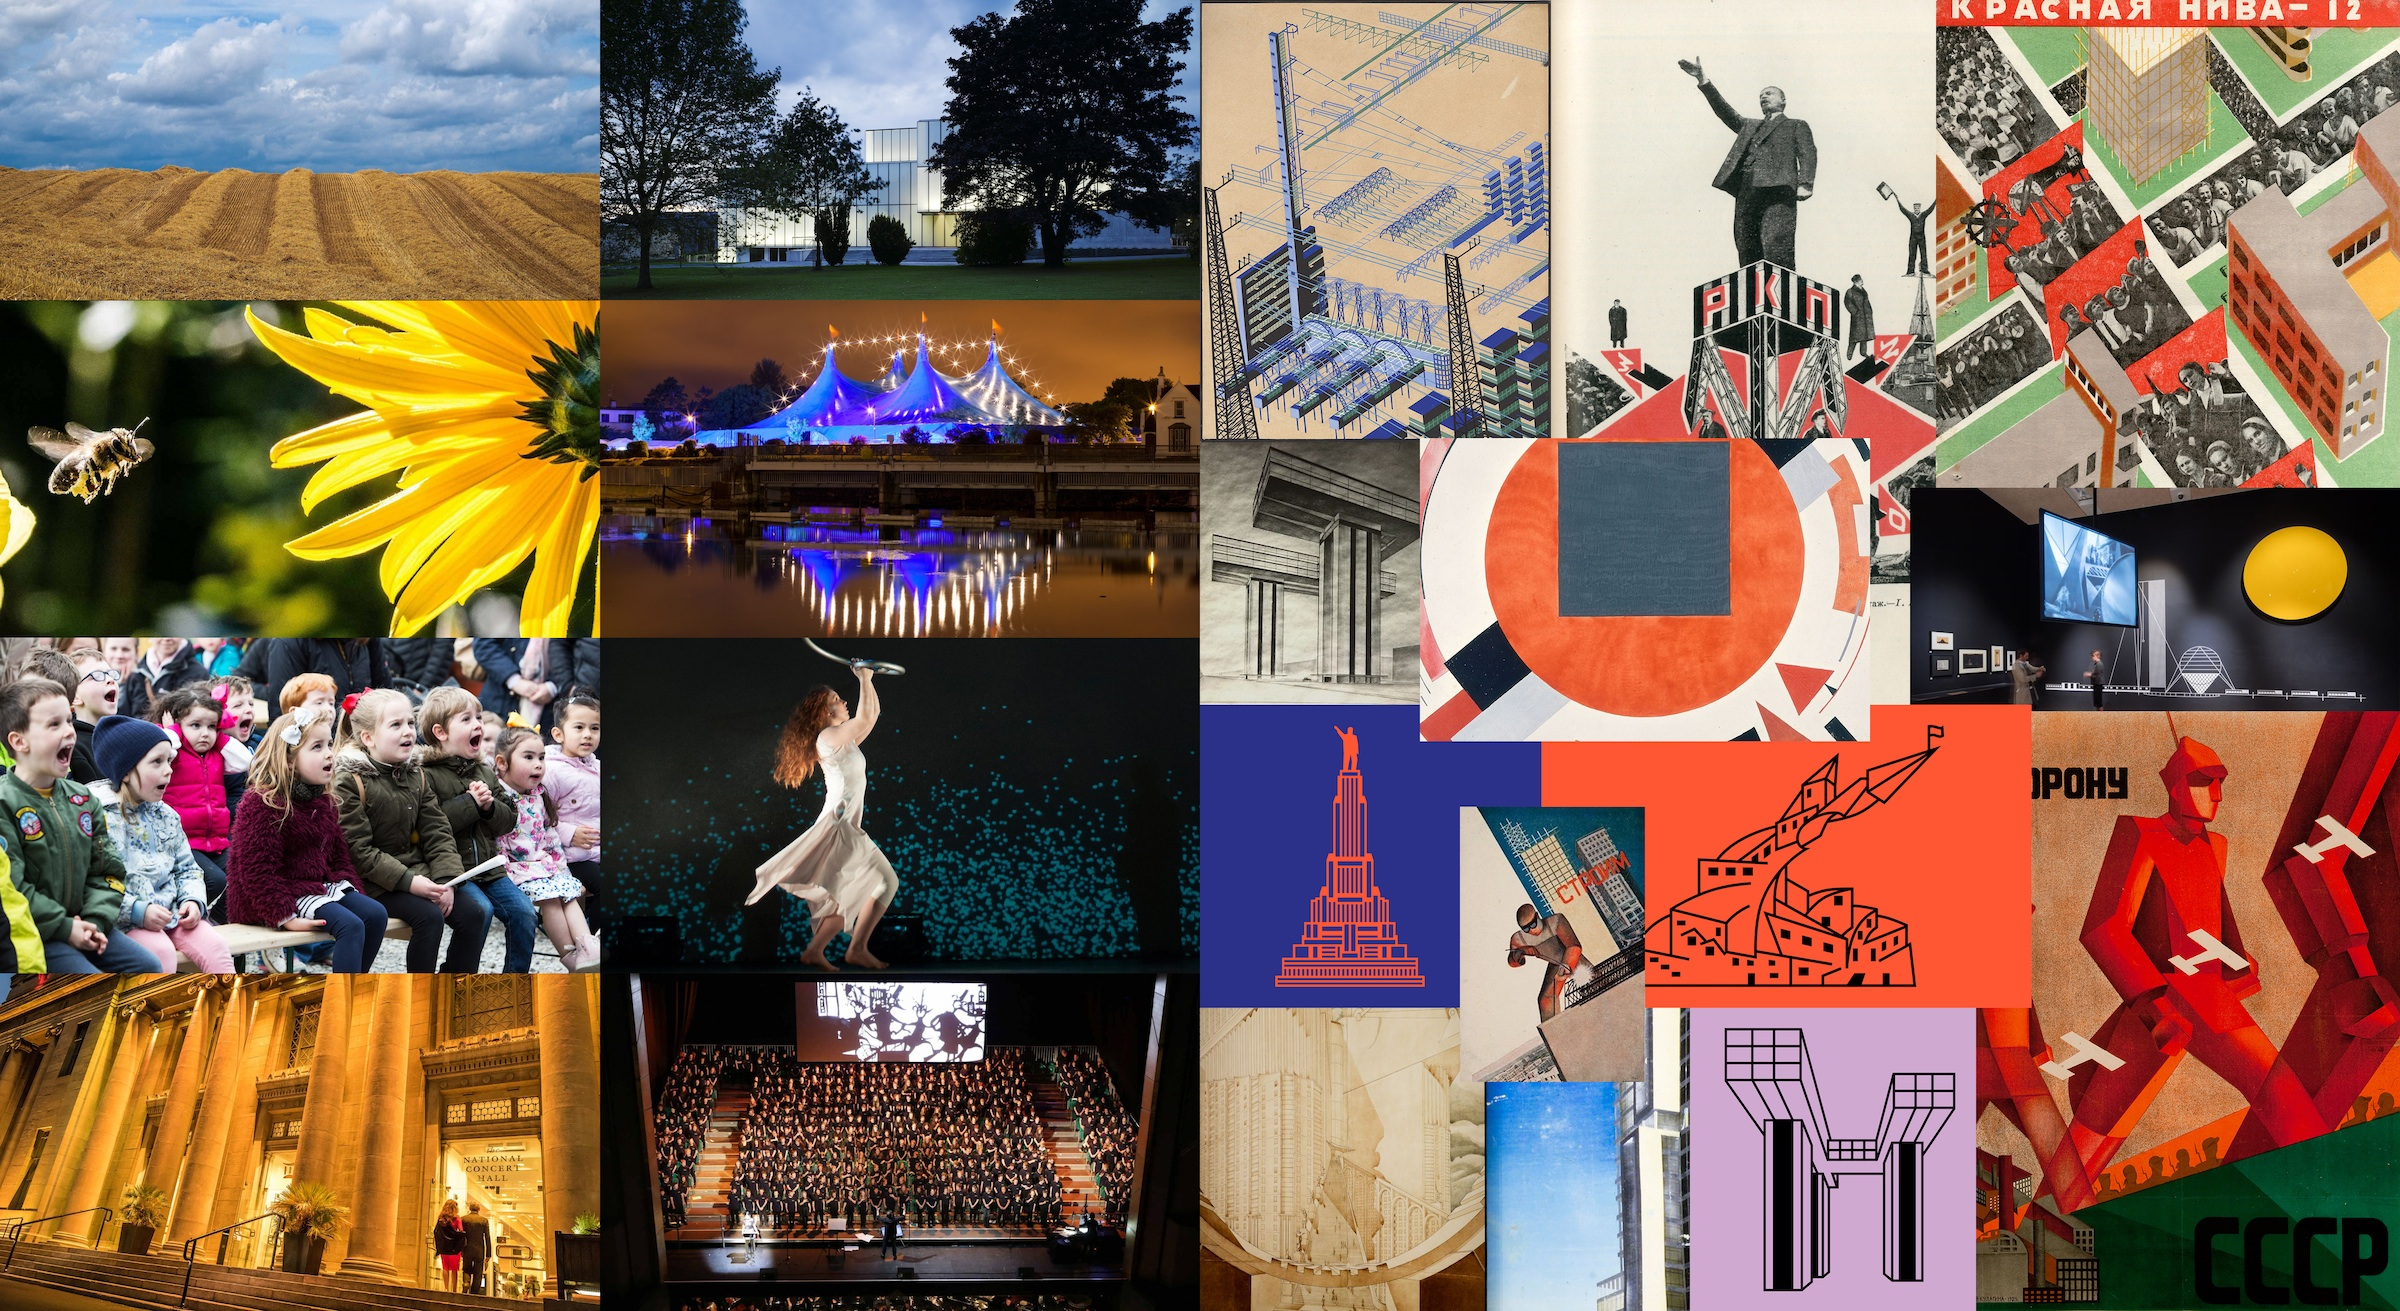 Montage of images from the Creative Ireland's website and from the Design Museum's 'Imagine Moscow: Architecture, Propaganda, Revolution' exhibition.